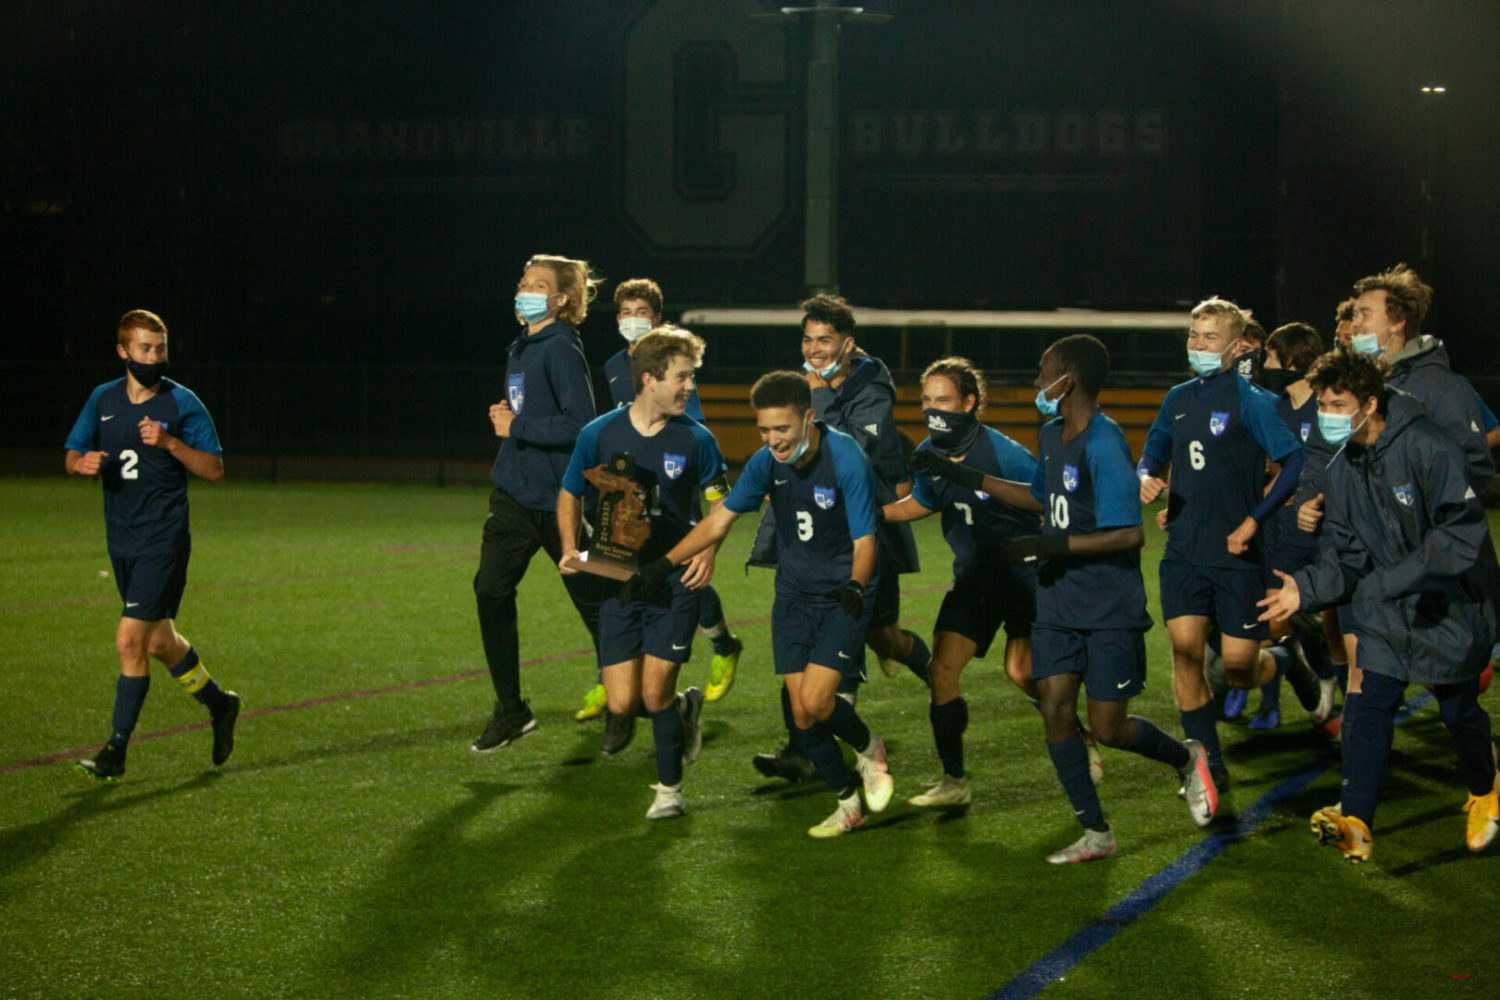 Yaros scores, DeKuiper gets the shutout, and Mona Shores soccer team wins first district title in memory